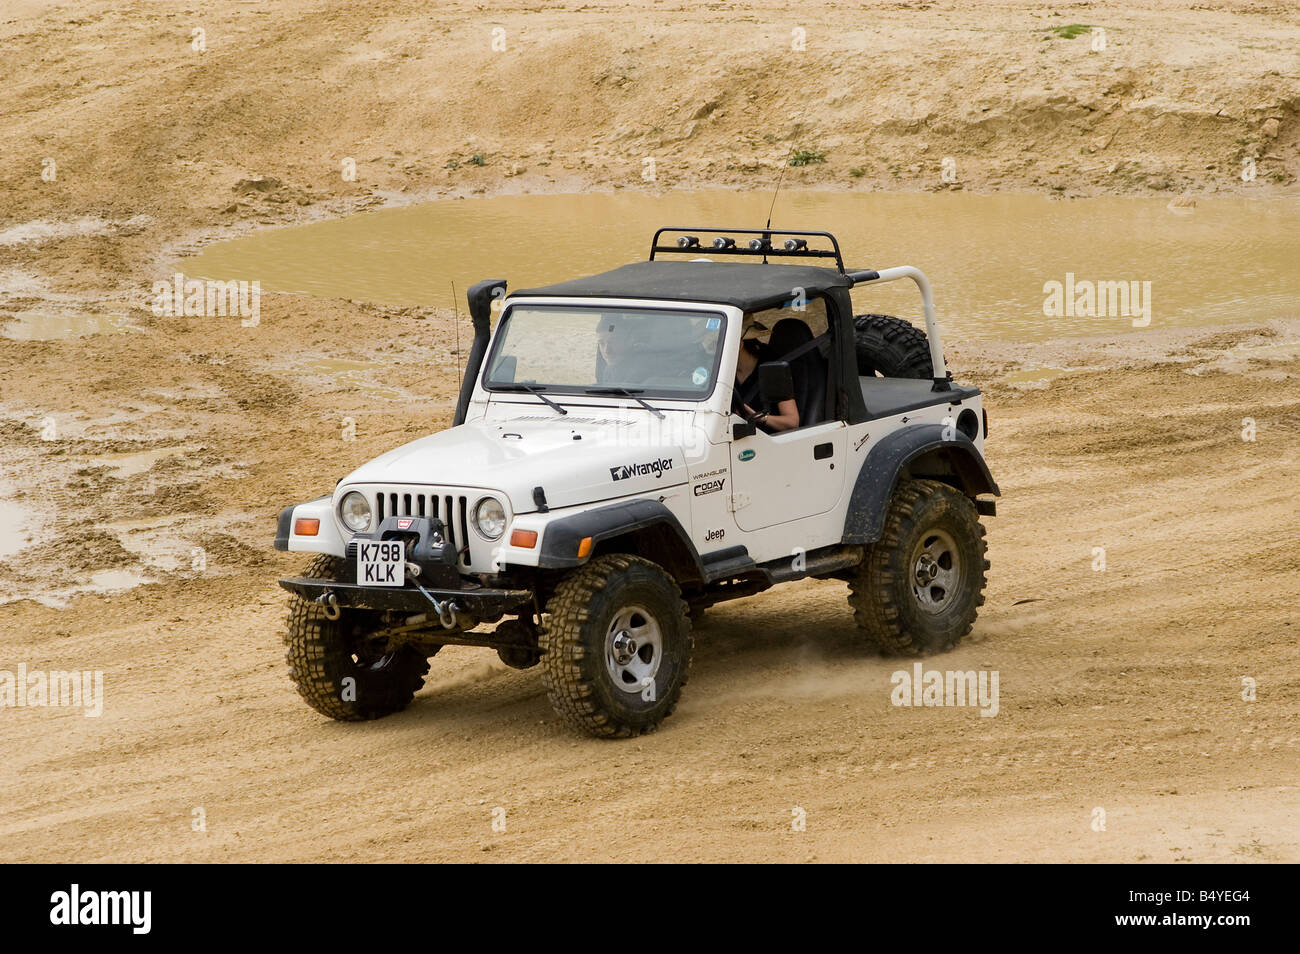 Jeep wrangler driving off road Stock Photo Royalty Free Image